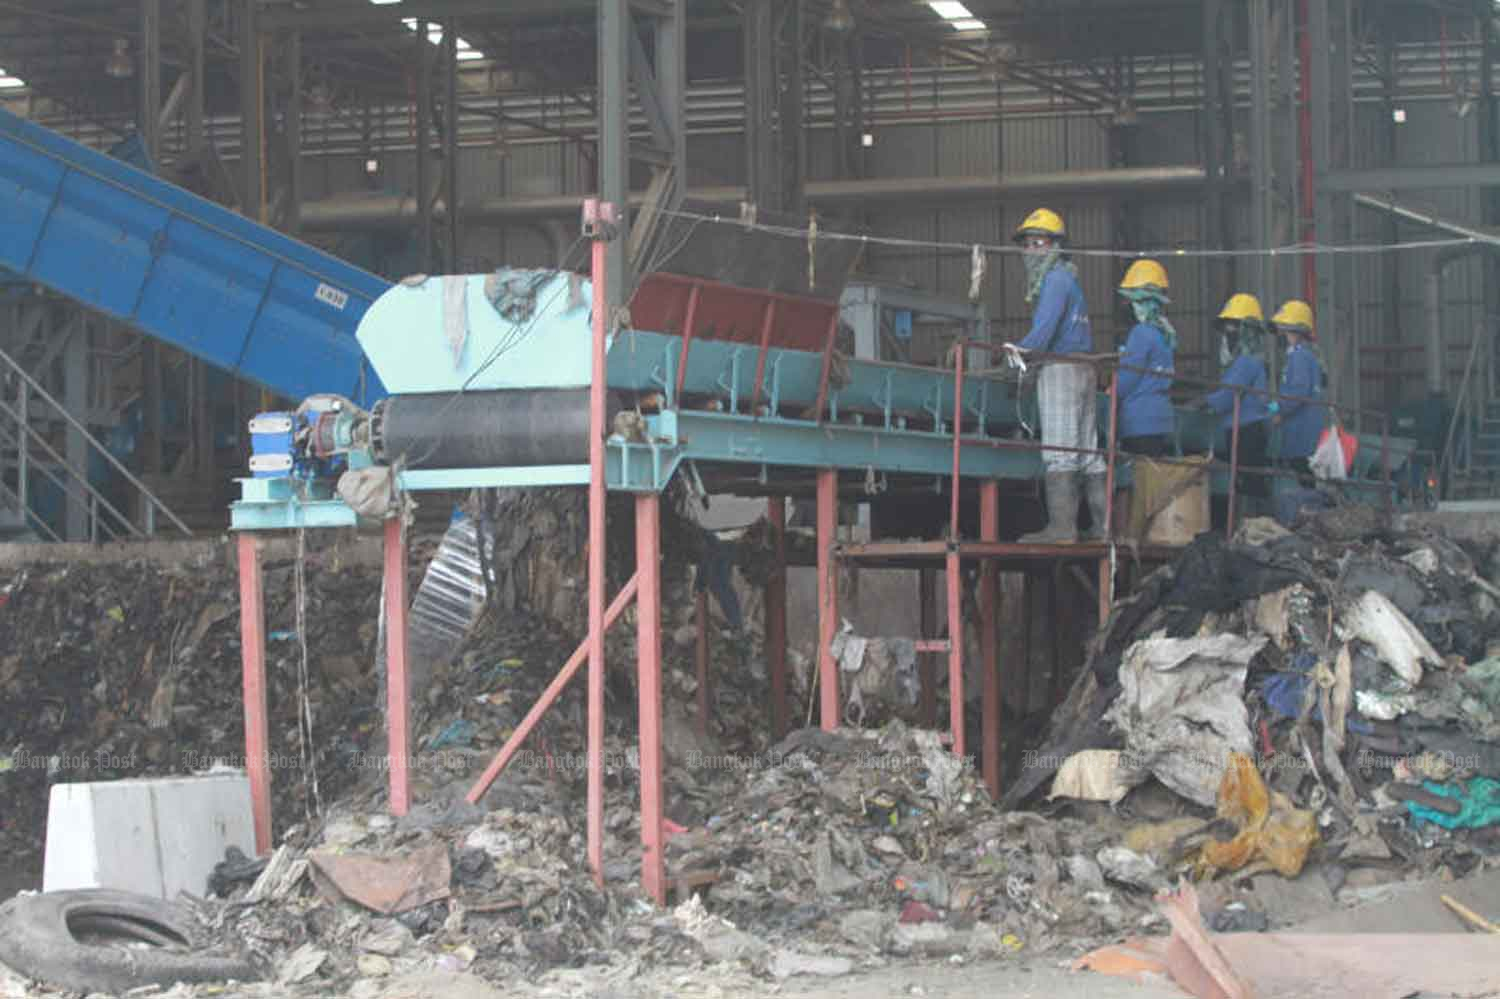 Workers feed garbage onto a conveyor belt at a biomass power plant in Samut Prakan province. (Bangkok Post file photo)